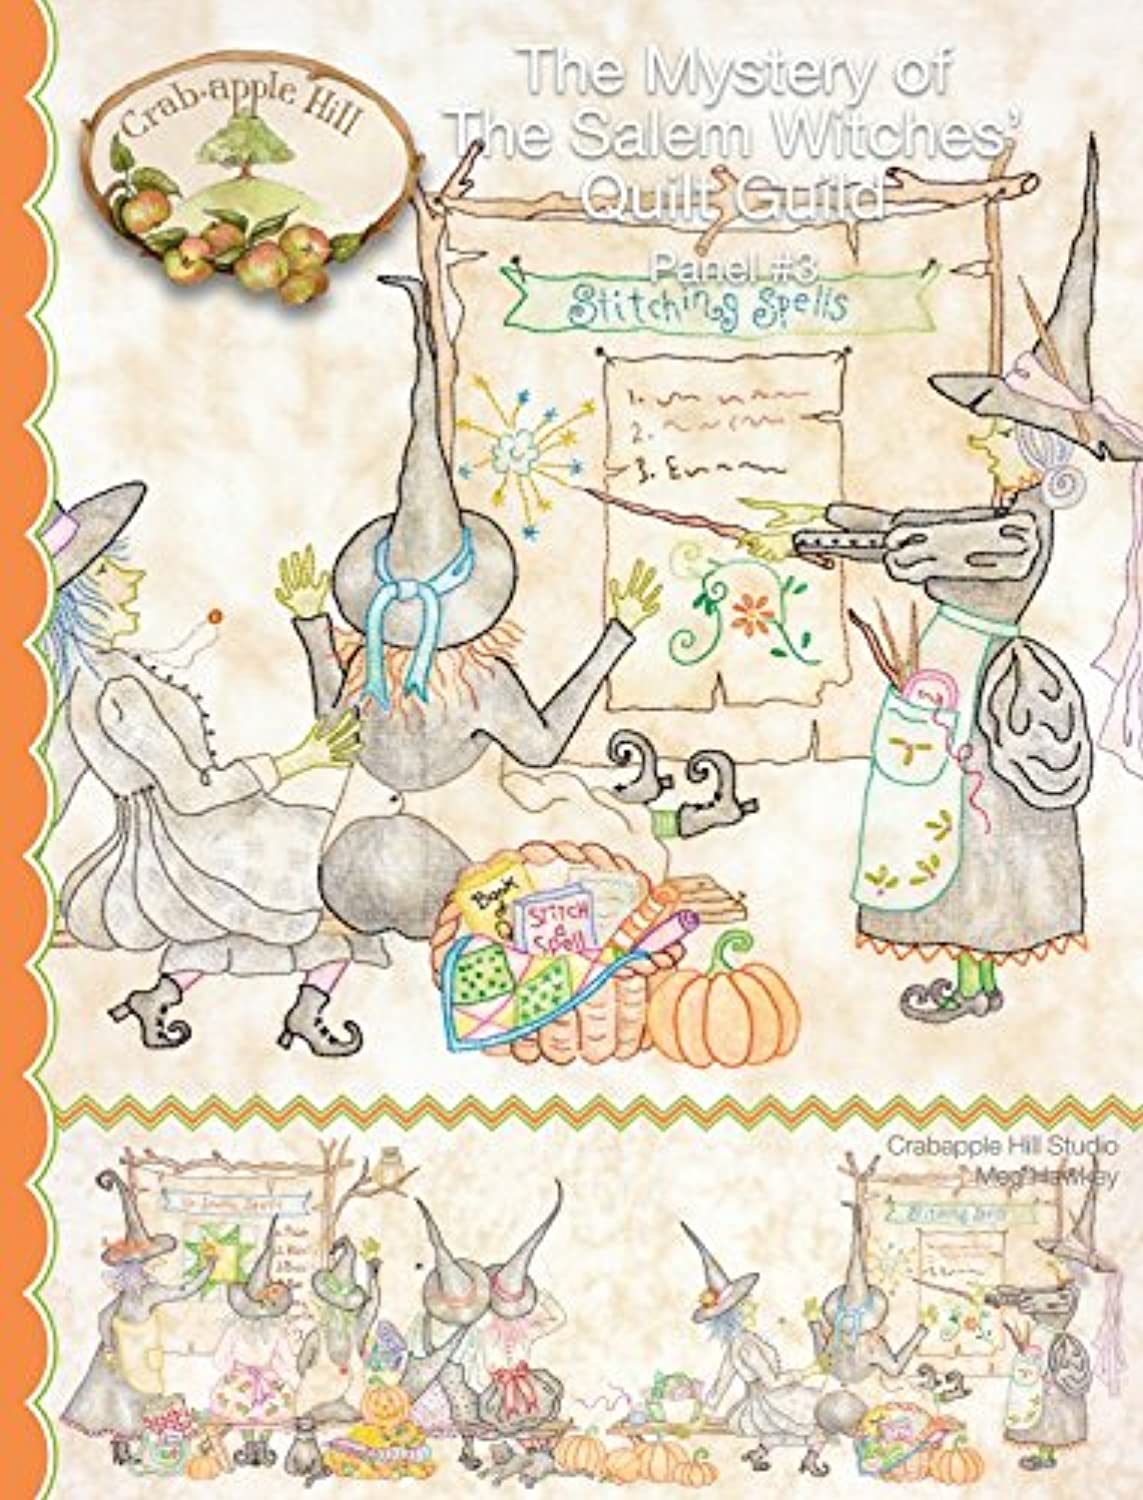 [クラブアップルヒルスタジオ]Crabapple Hill Studio The Mystery of The Salem Witches' Quilt Guild Panel #3 347 [並行輸入品]